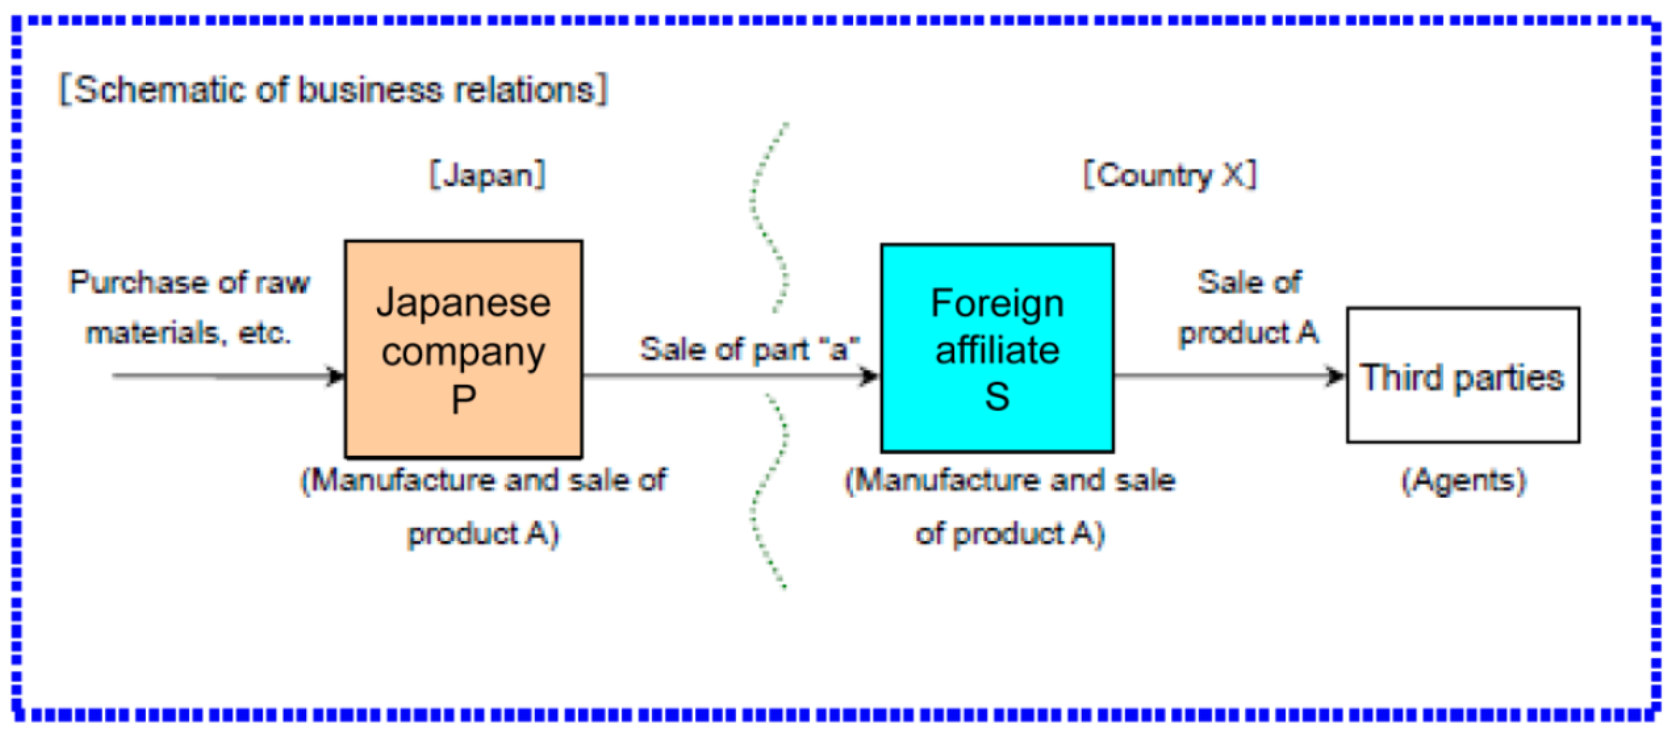 HLS Japan transfer pricing infographic